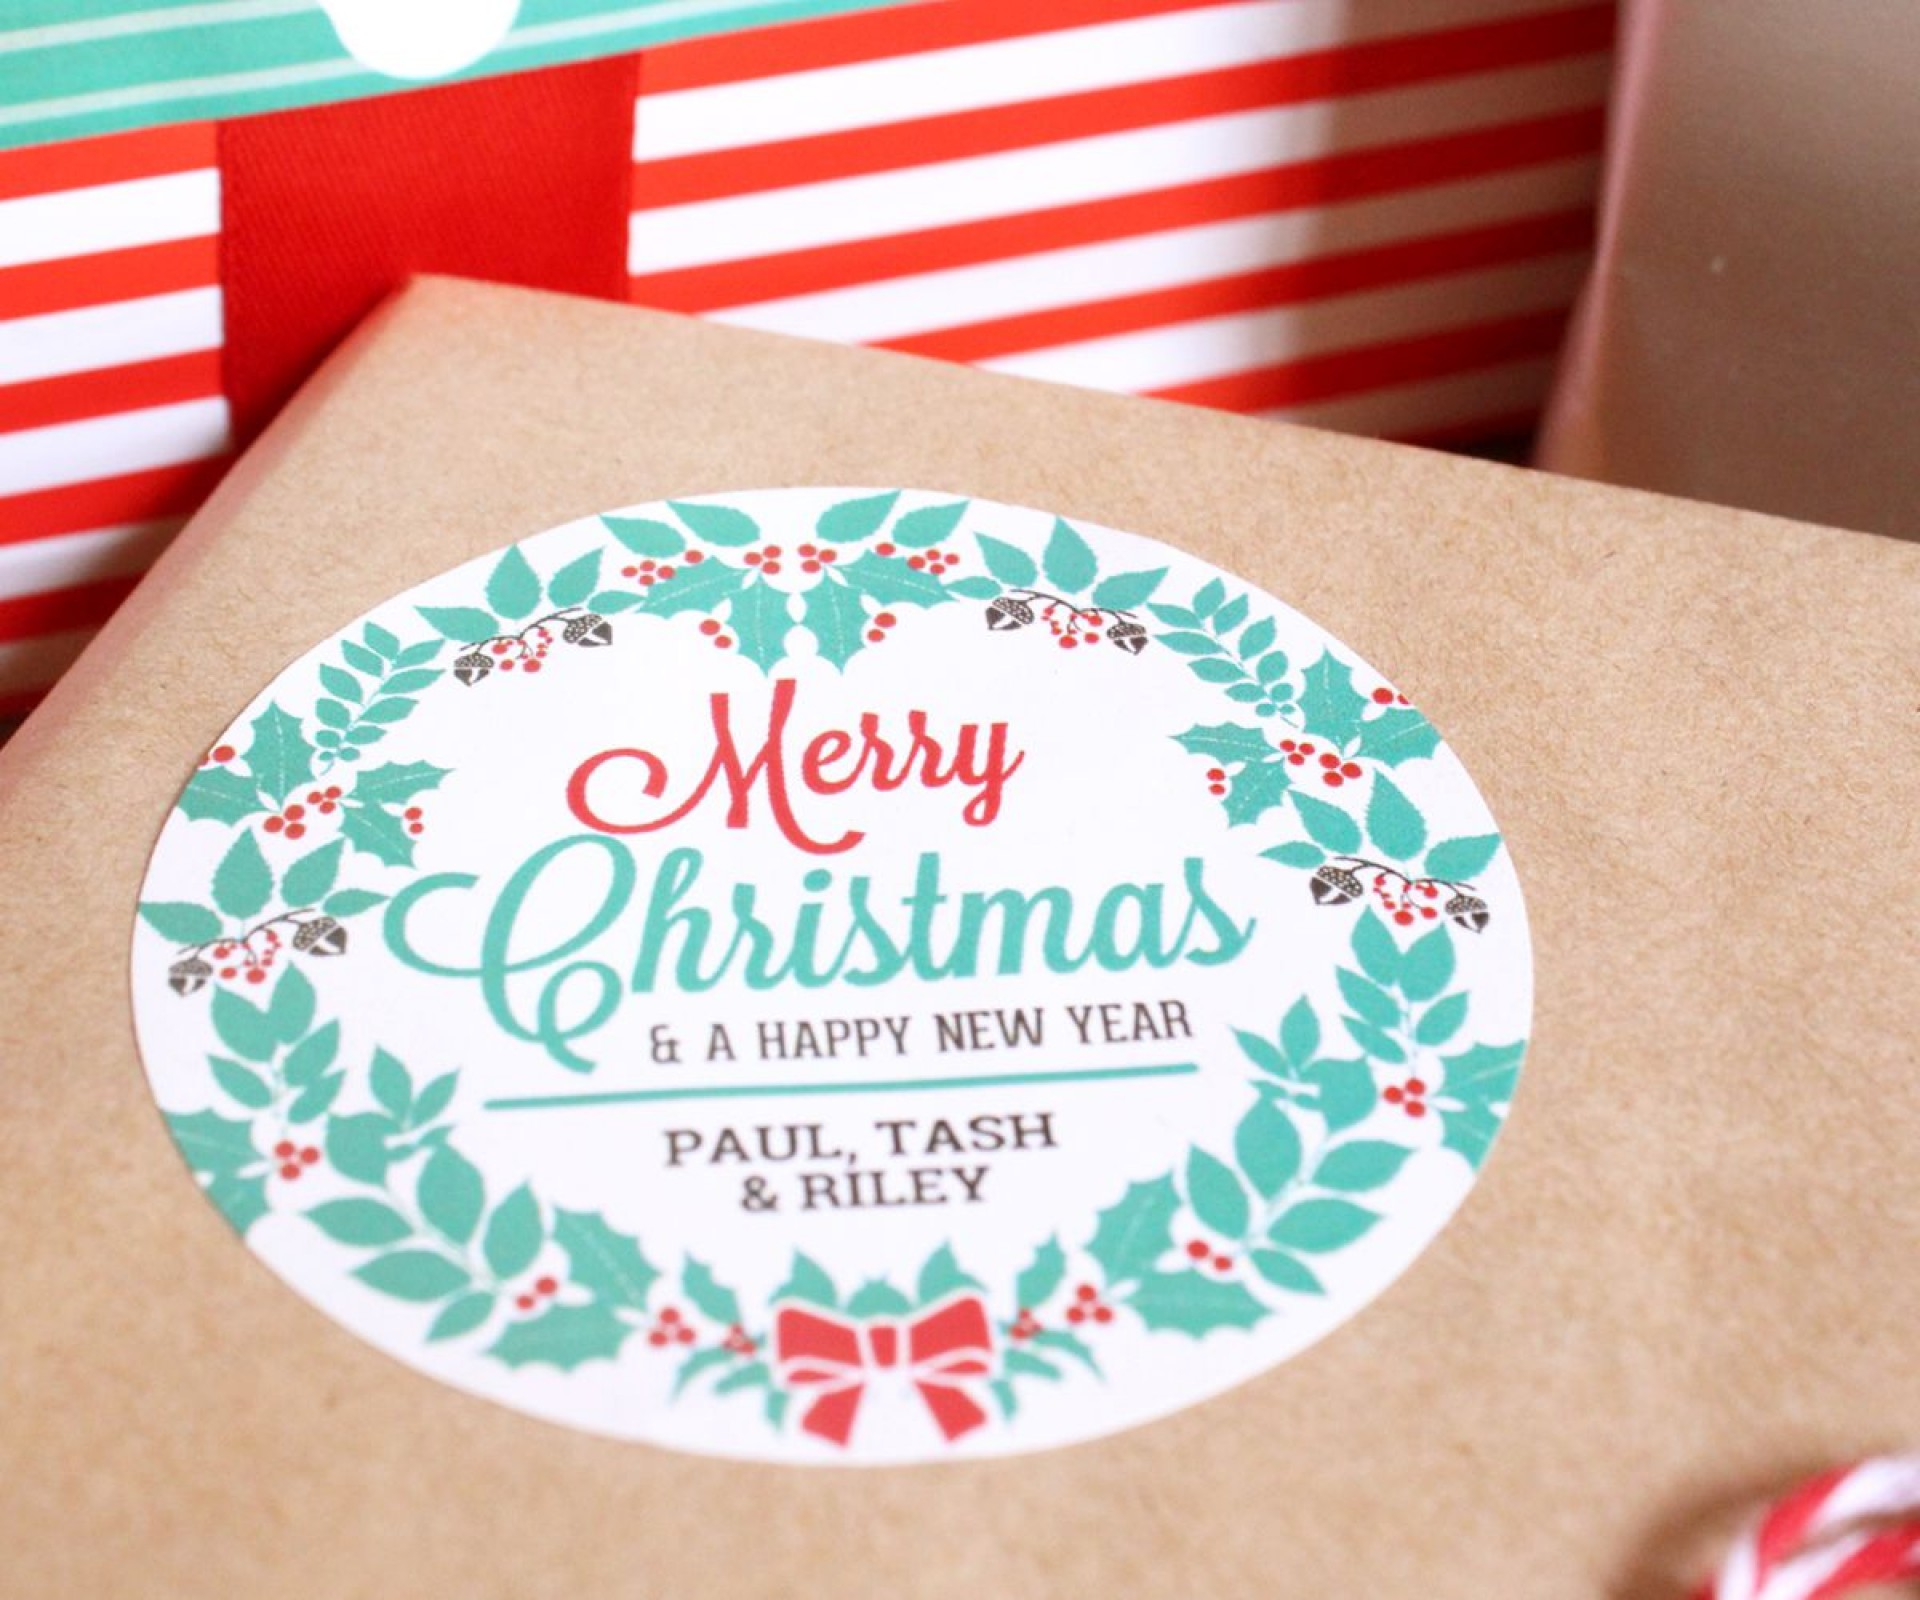 008 Top Free Download Christma Addres Label Template Inspiration  Templates1920